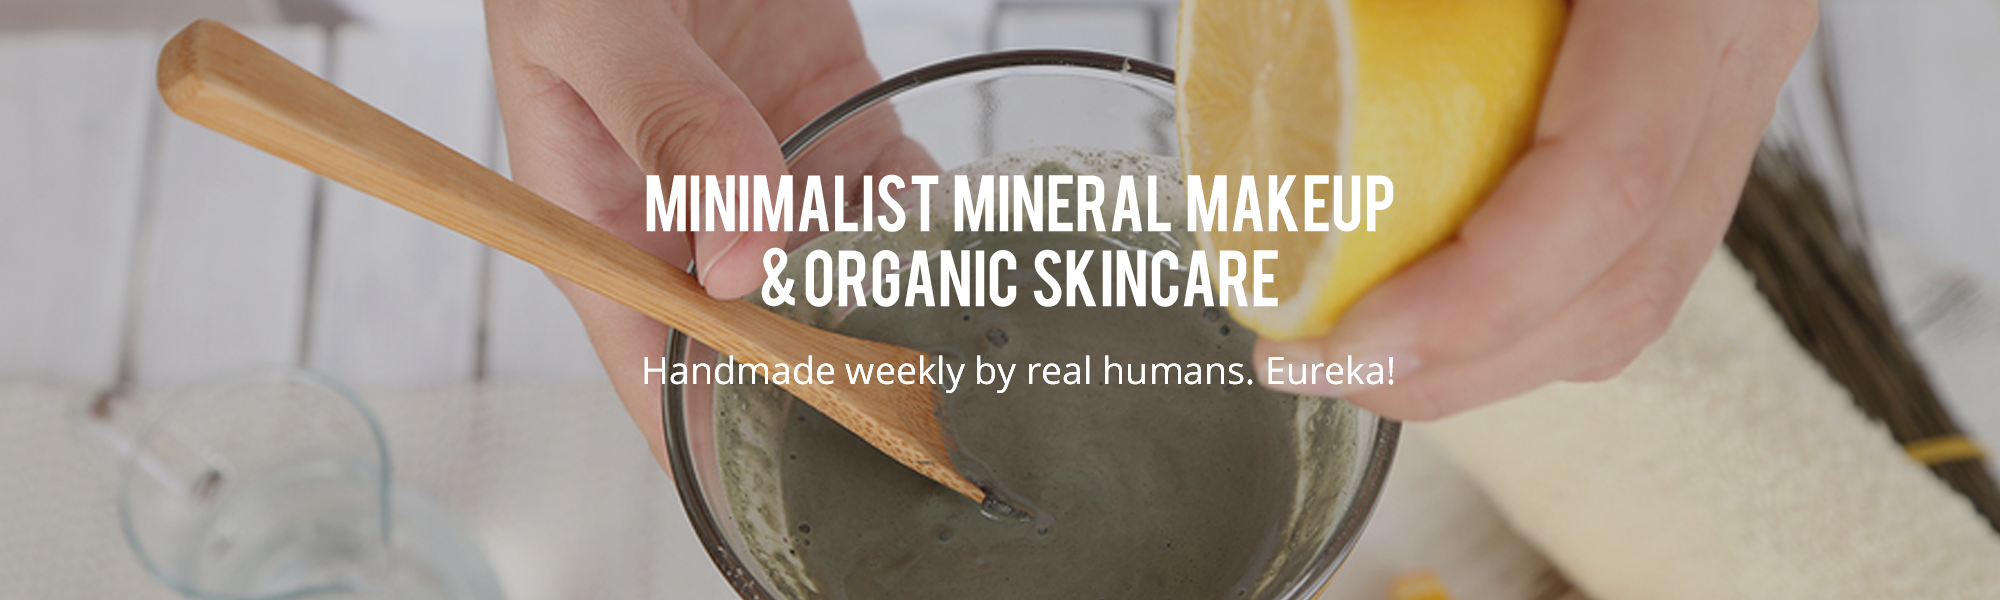 Minimalist mineral makeup and organic skincare handmade weekly by real humans.